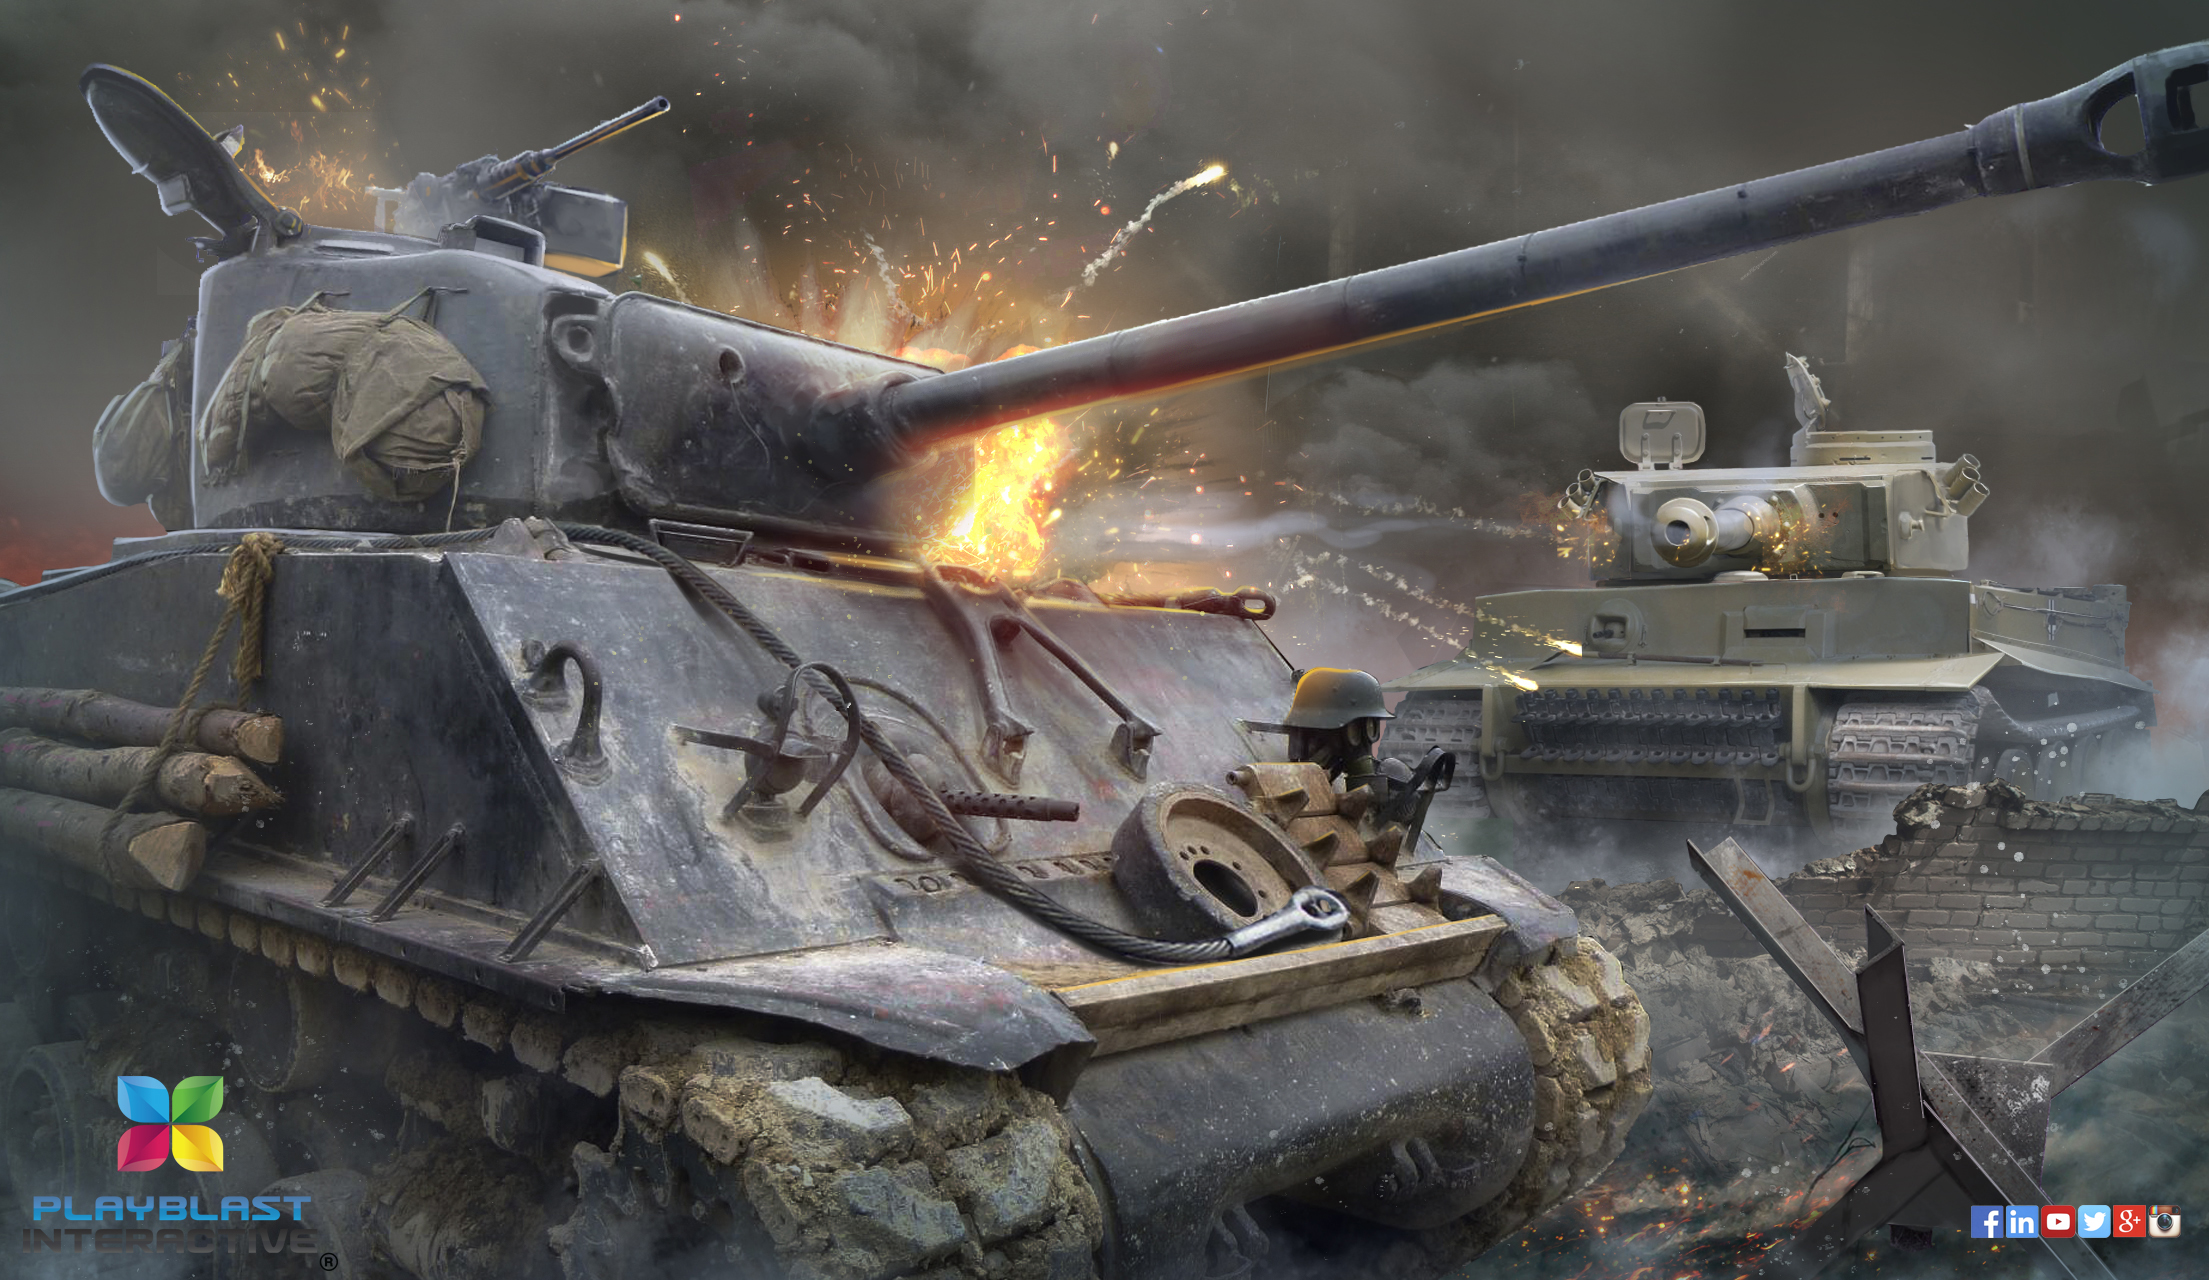 Some concept art for one of our Tank games.